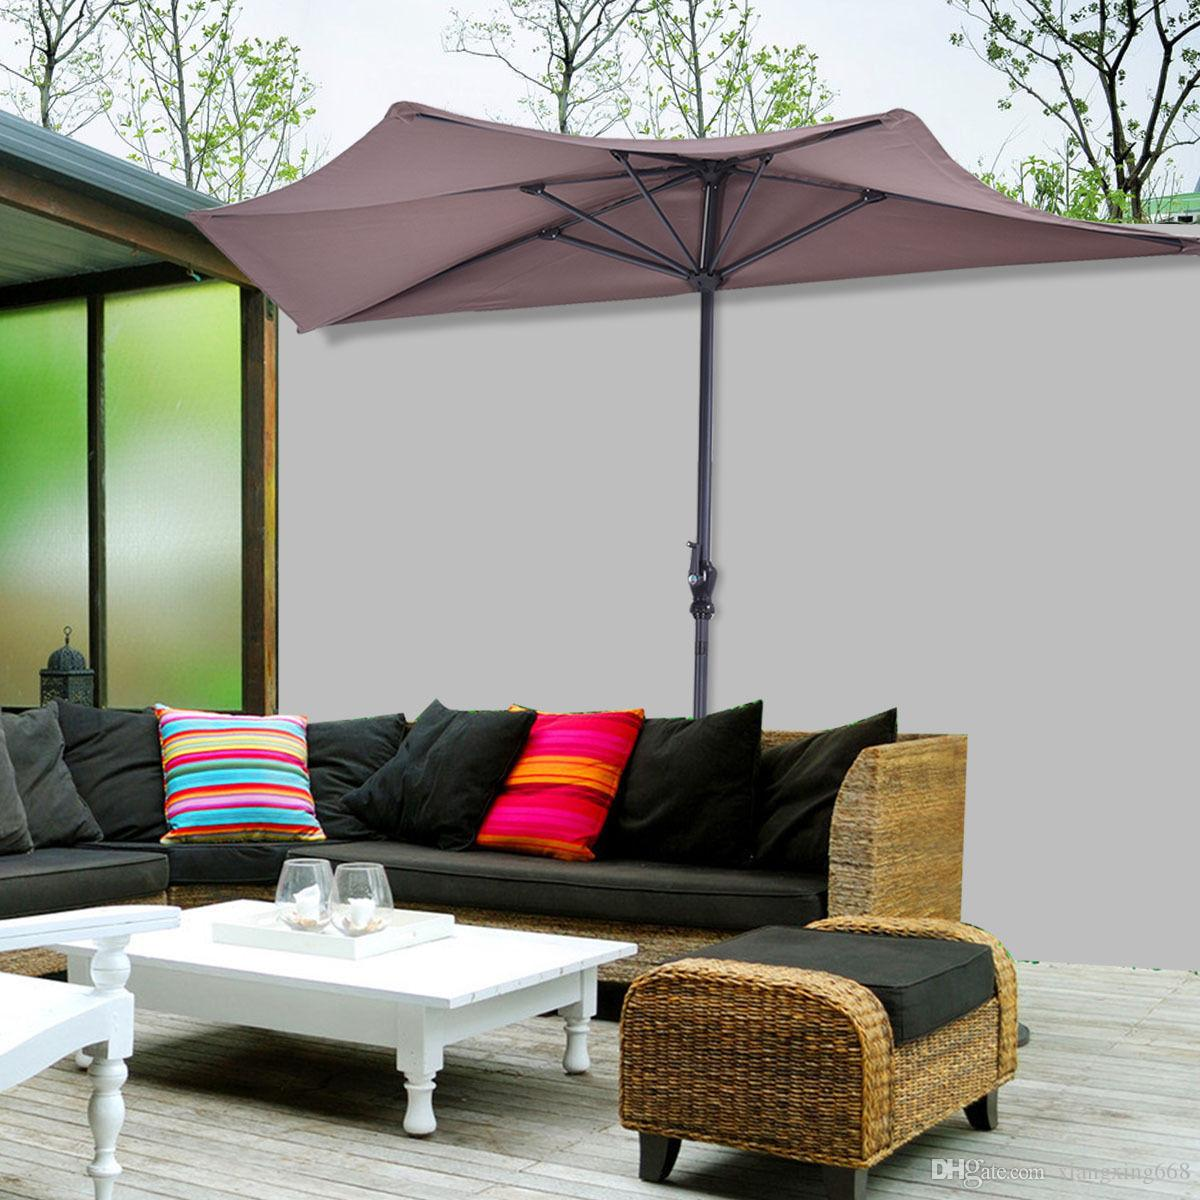 patio popular half exterior pictures umbrella wall off umbrellas decorating the of